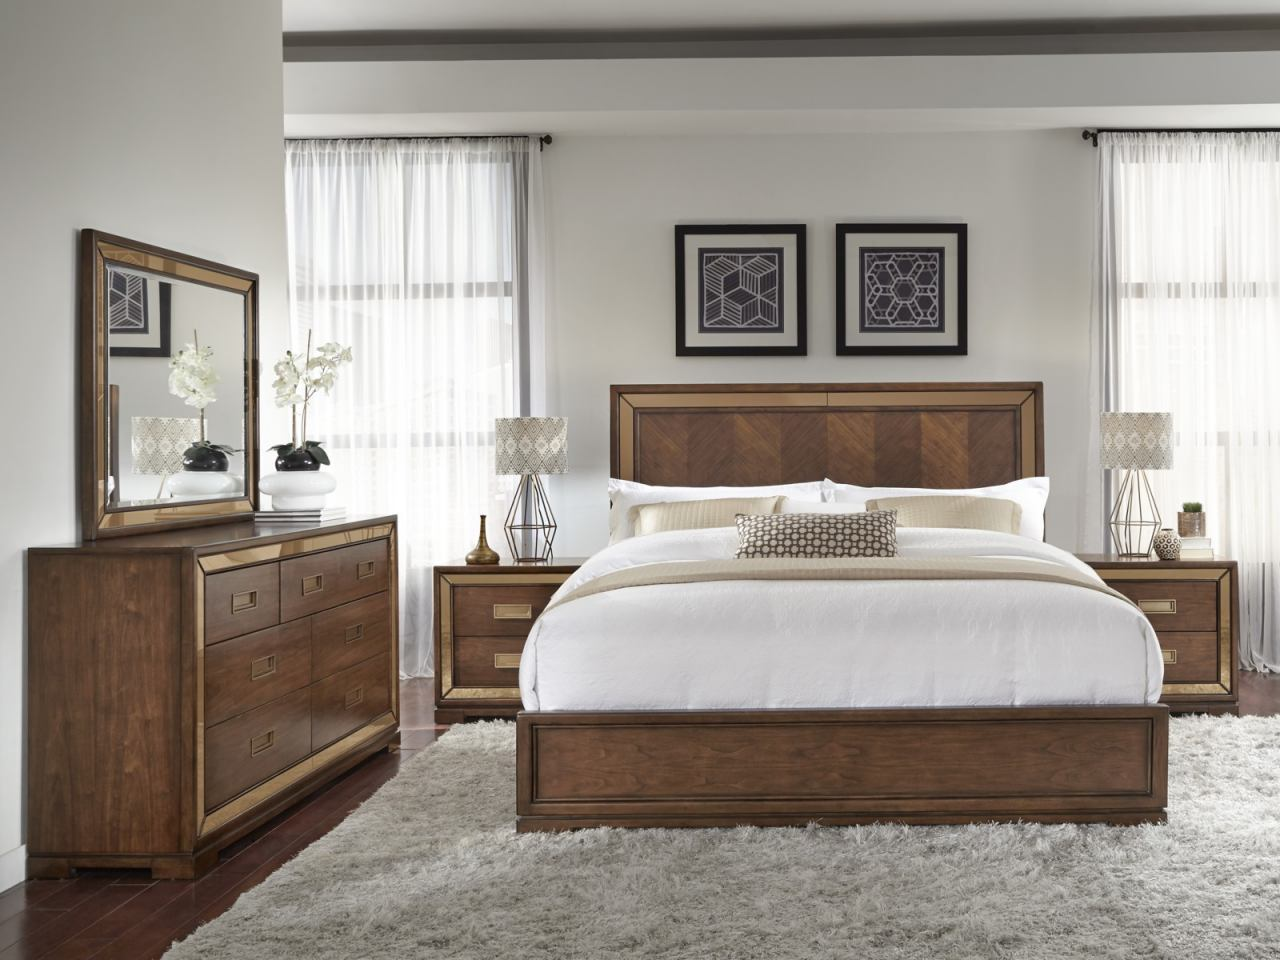 Pulaski Chrystelle Panel Bedroom Set in Cognac